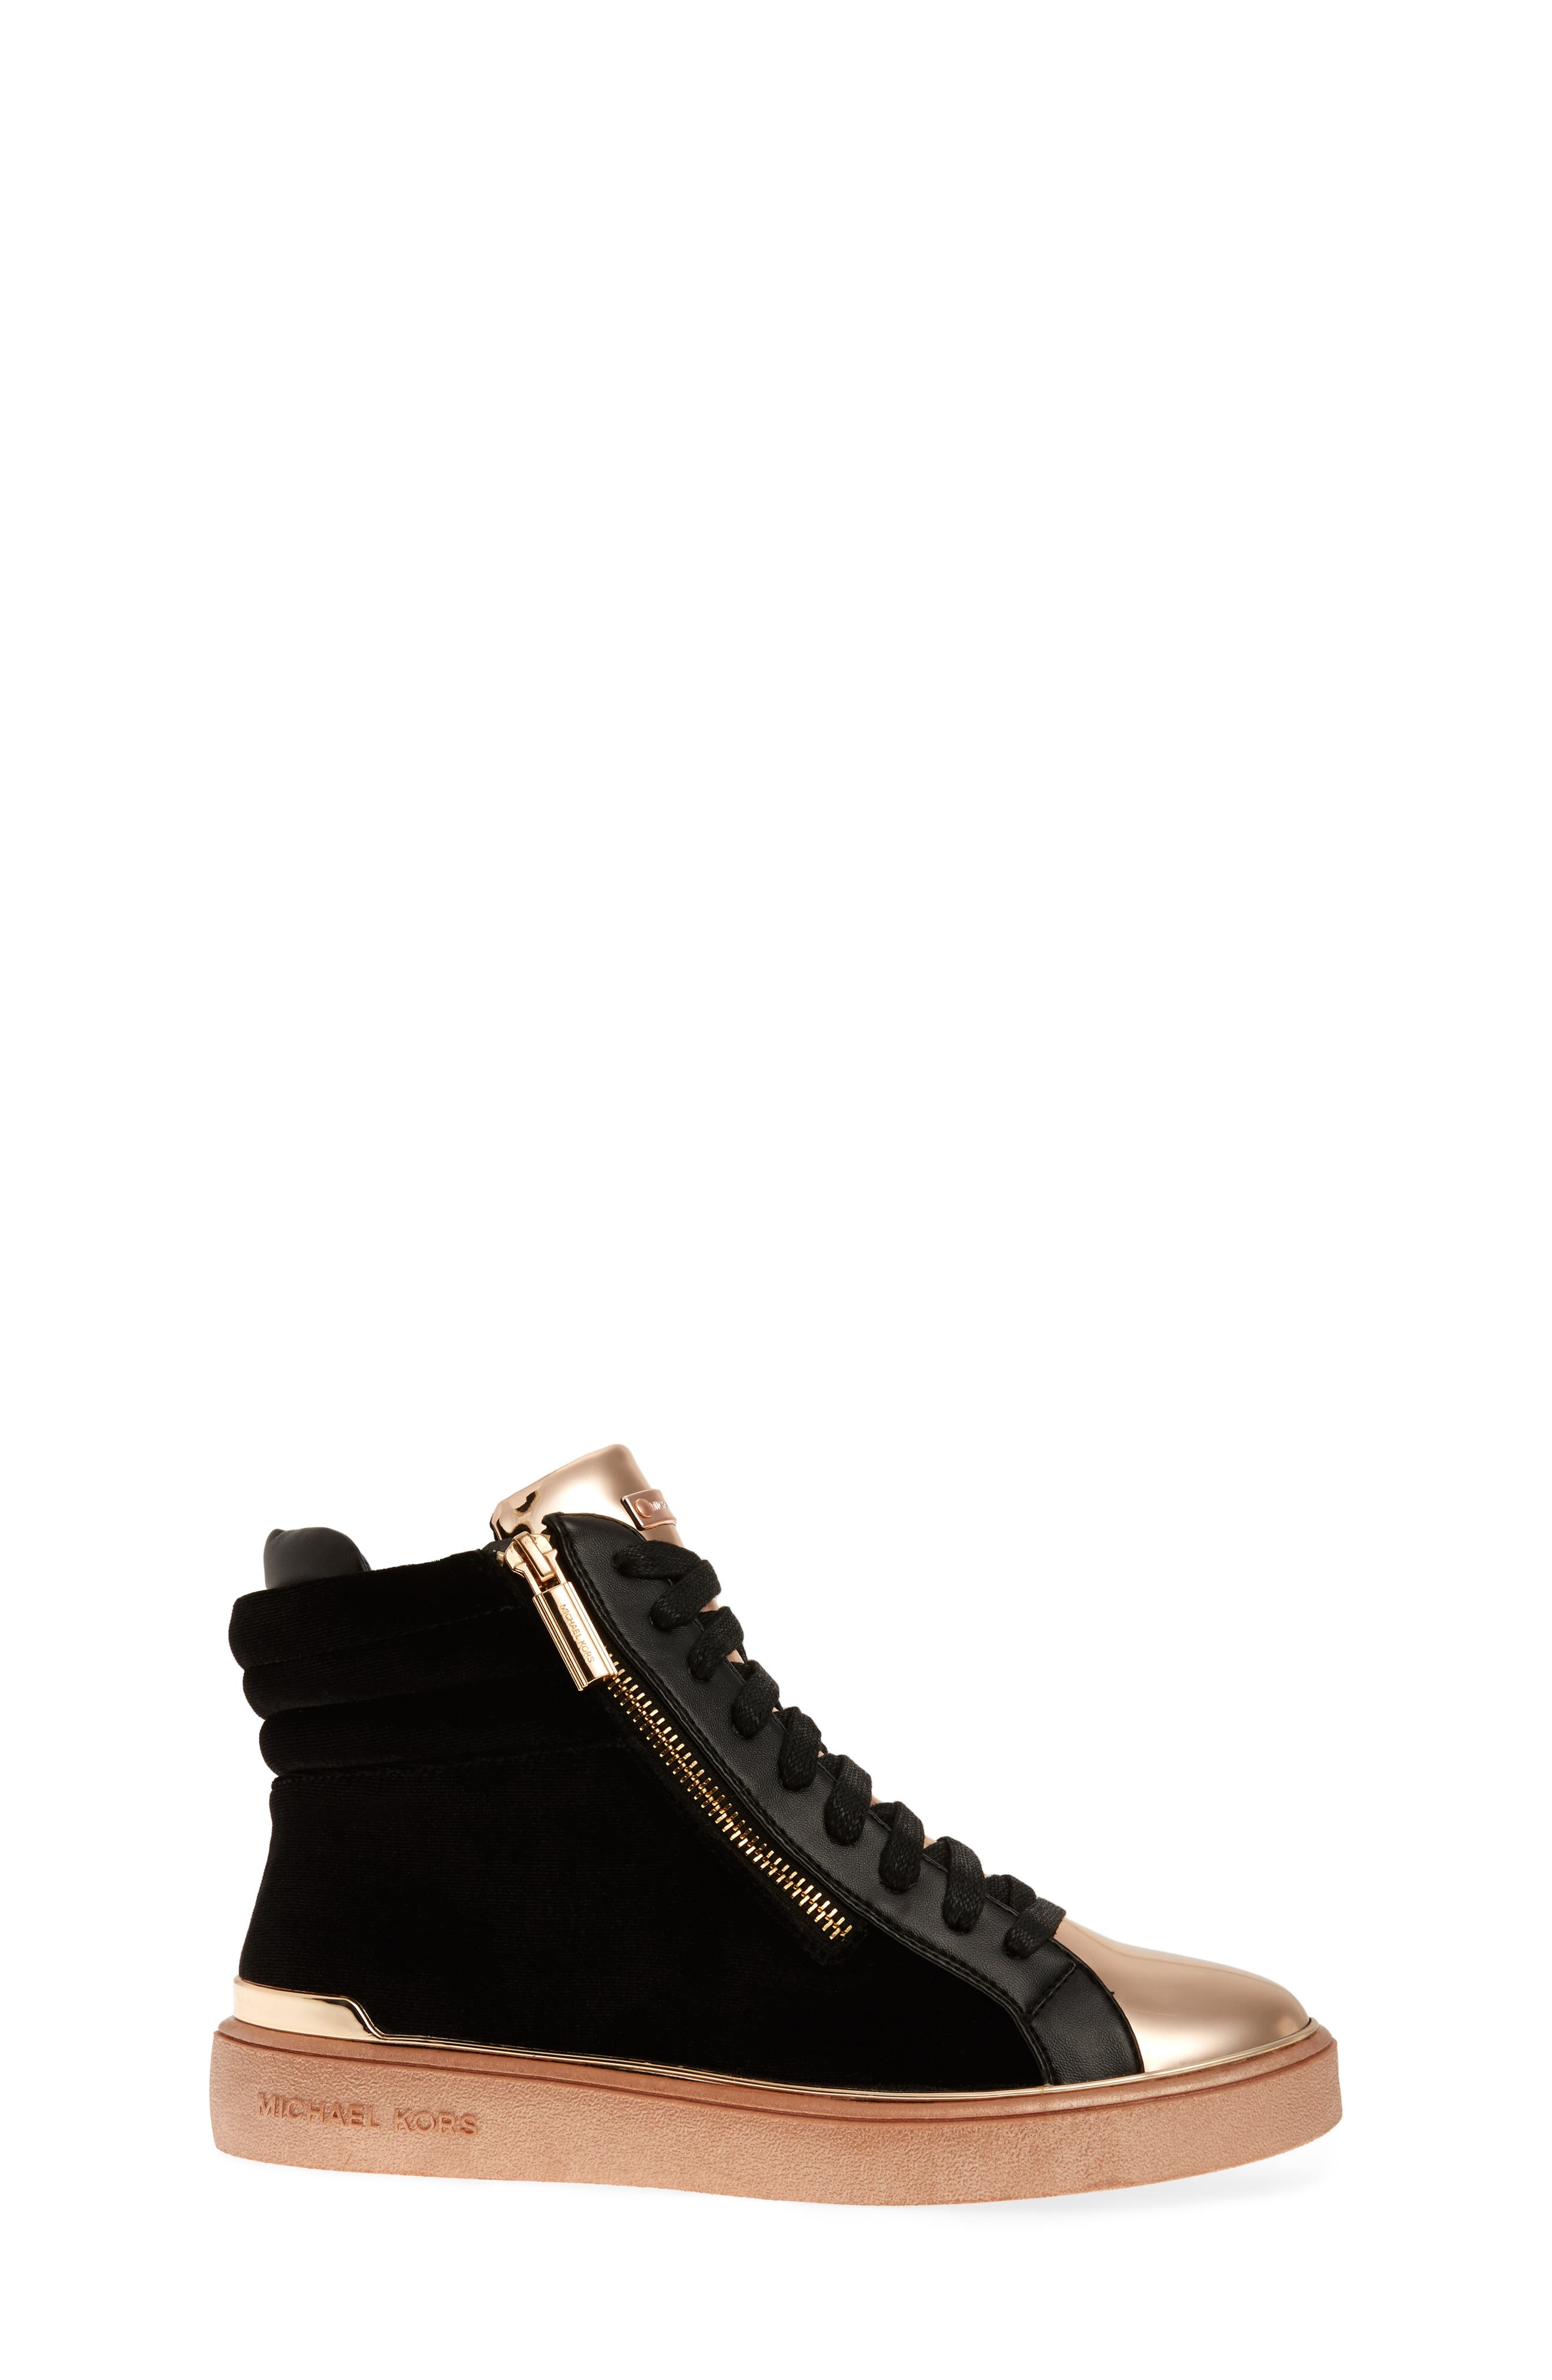 Ivy Blue High Top Sneaker,                             Alternate thumbnail 5, color,